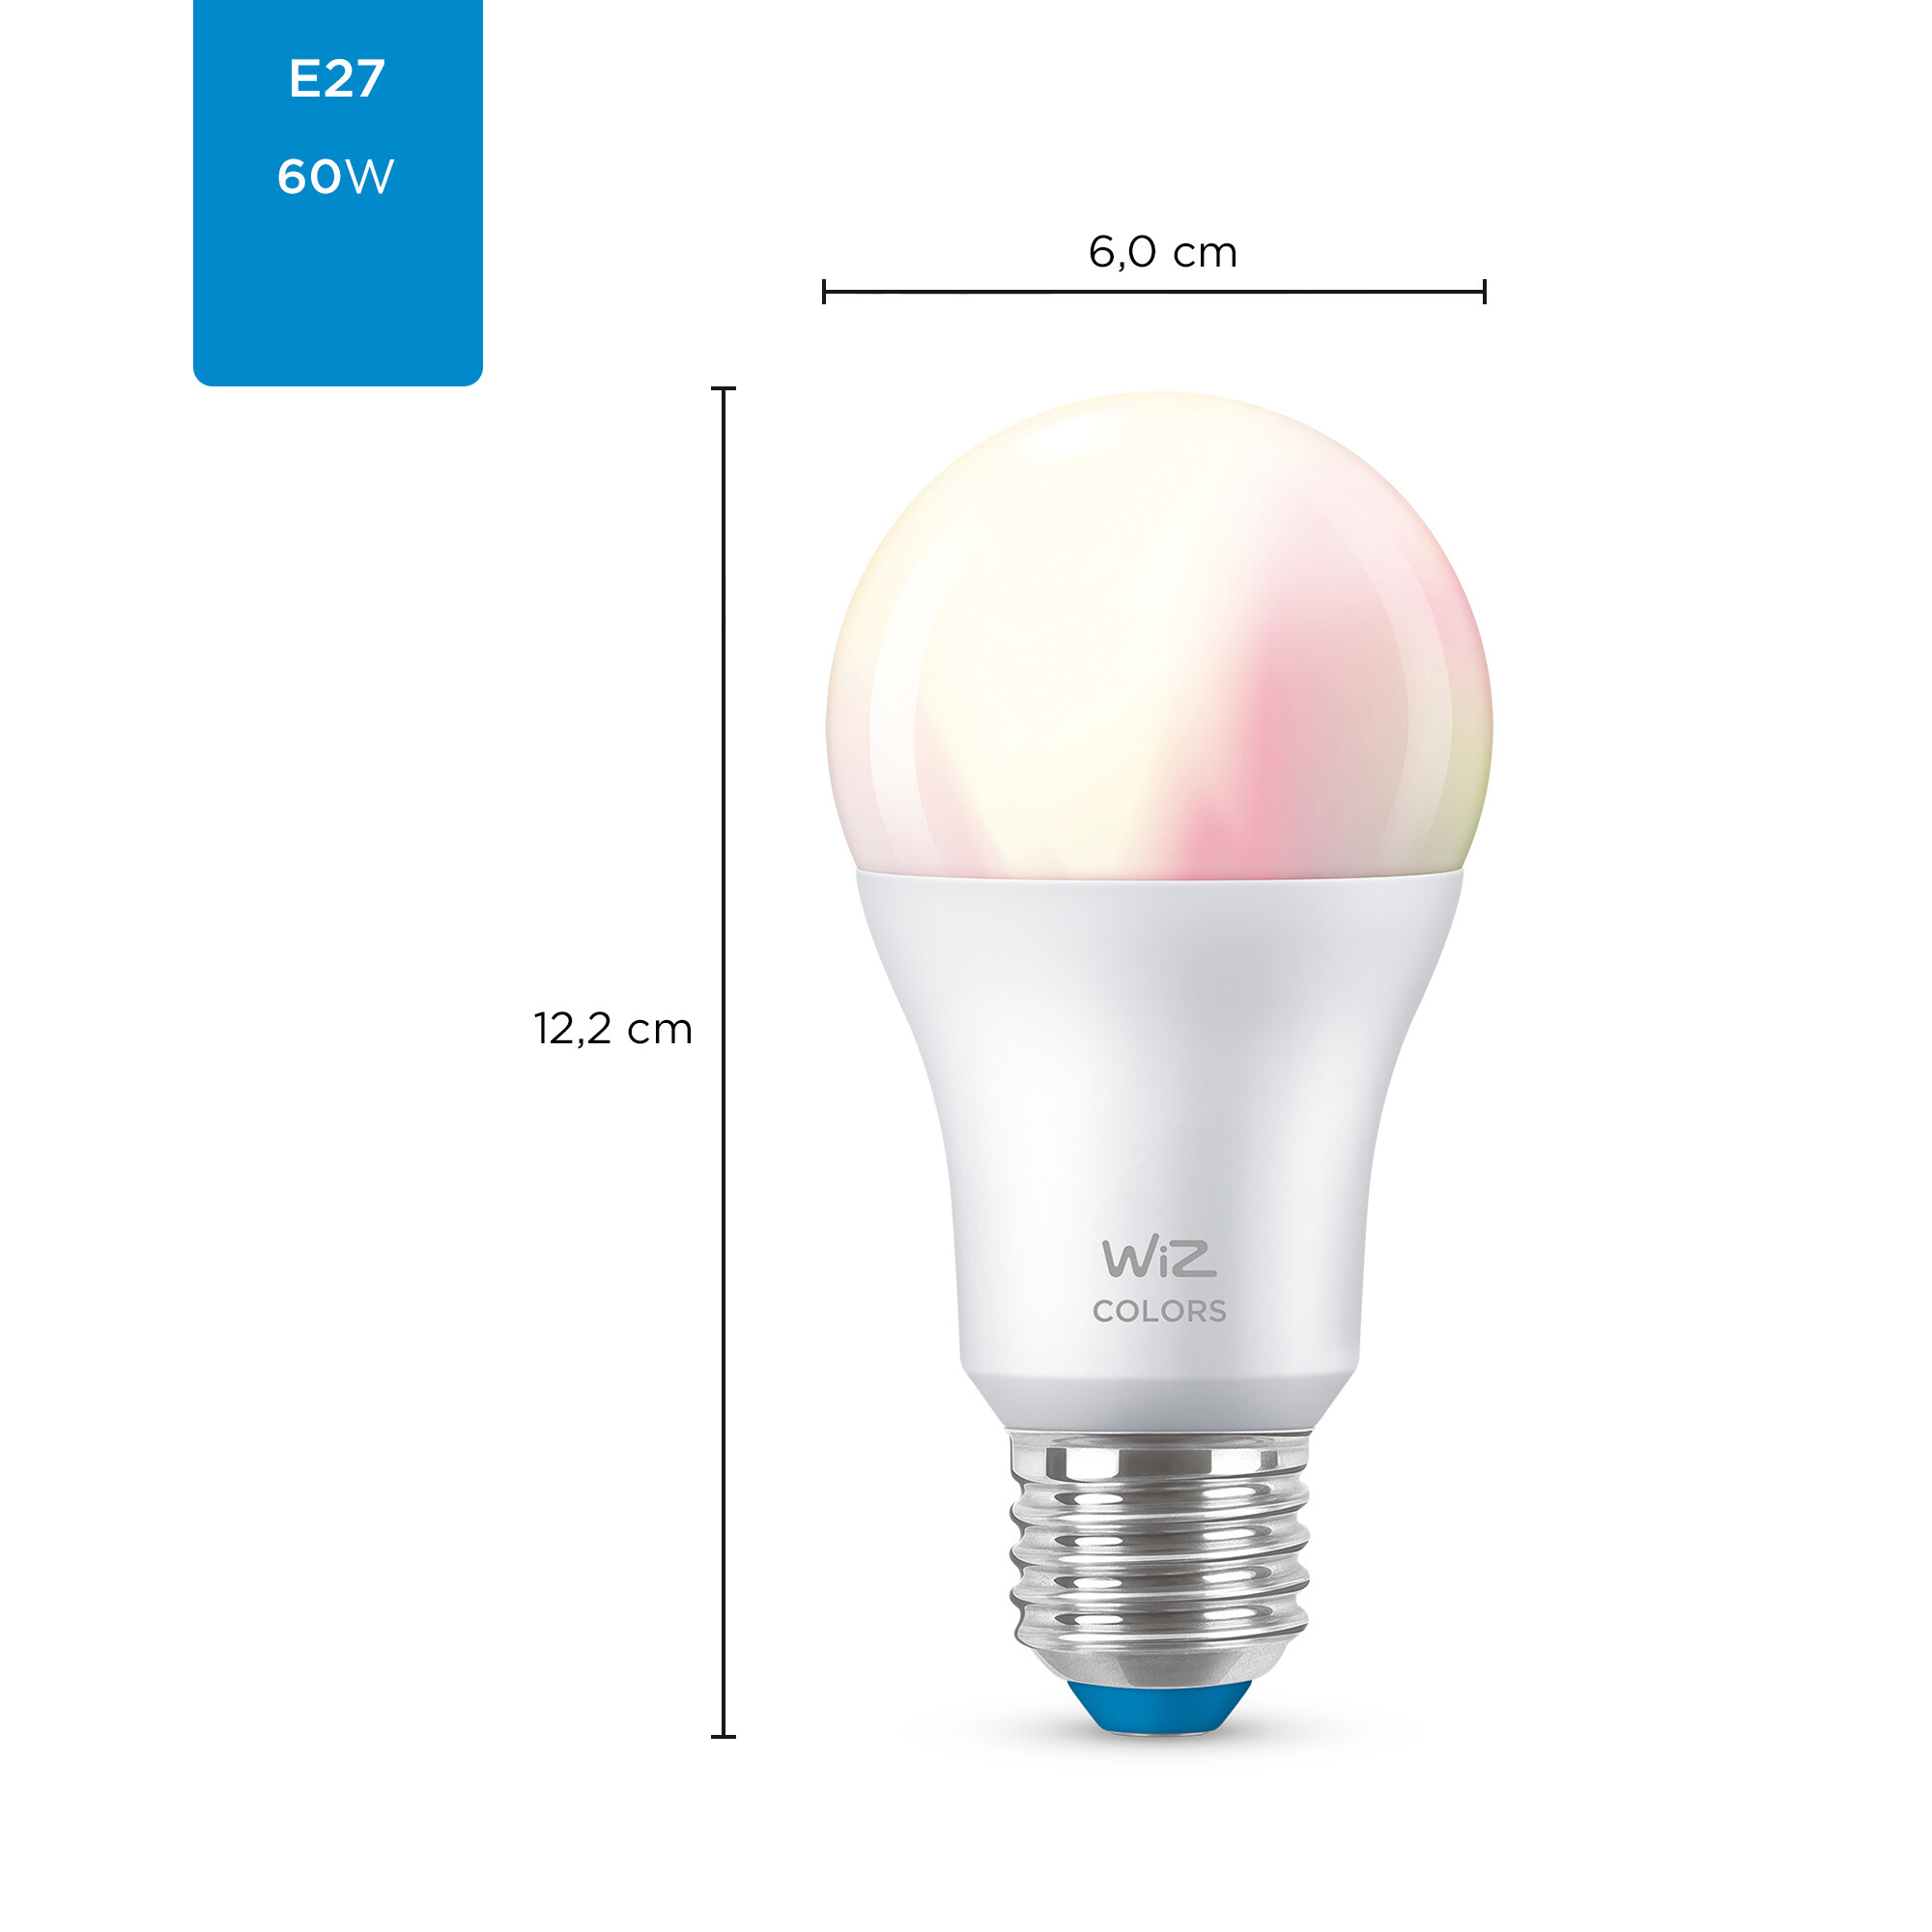 WiZ E27 60W 806lm 2200K-6500K Lamp Frosted